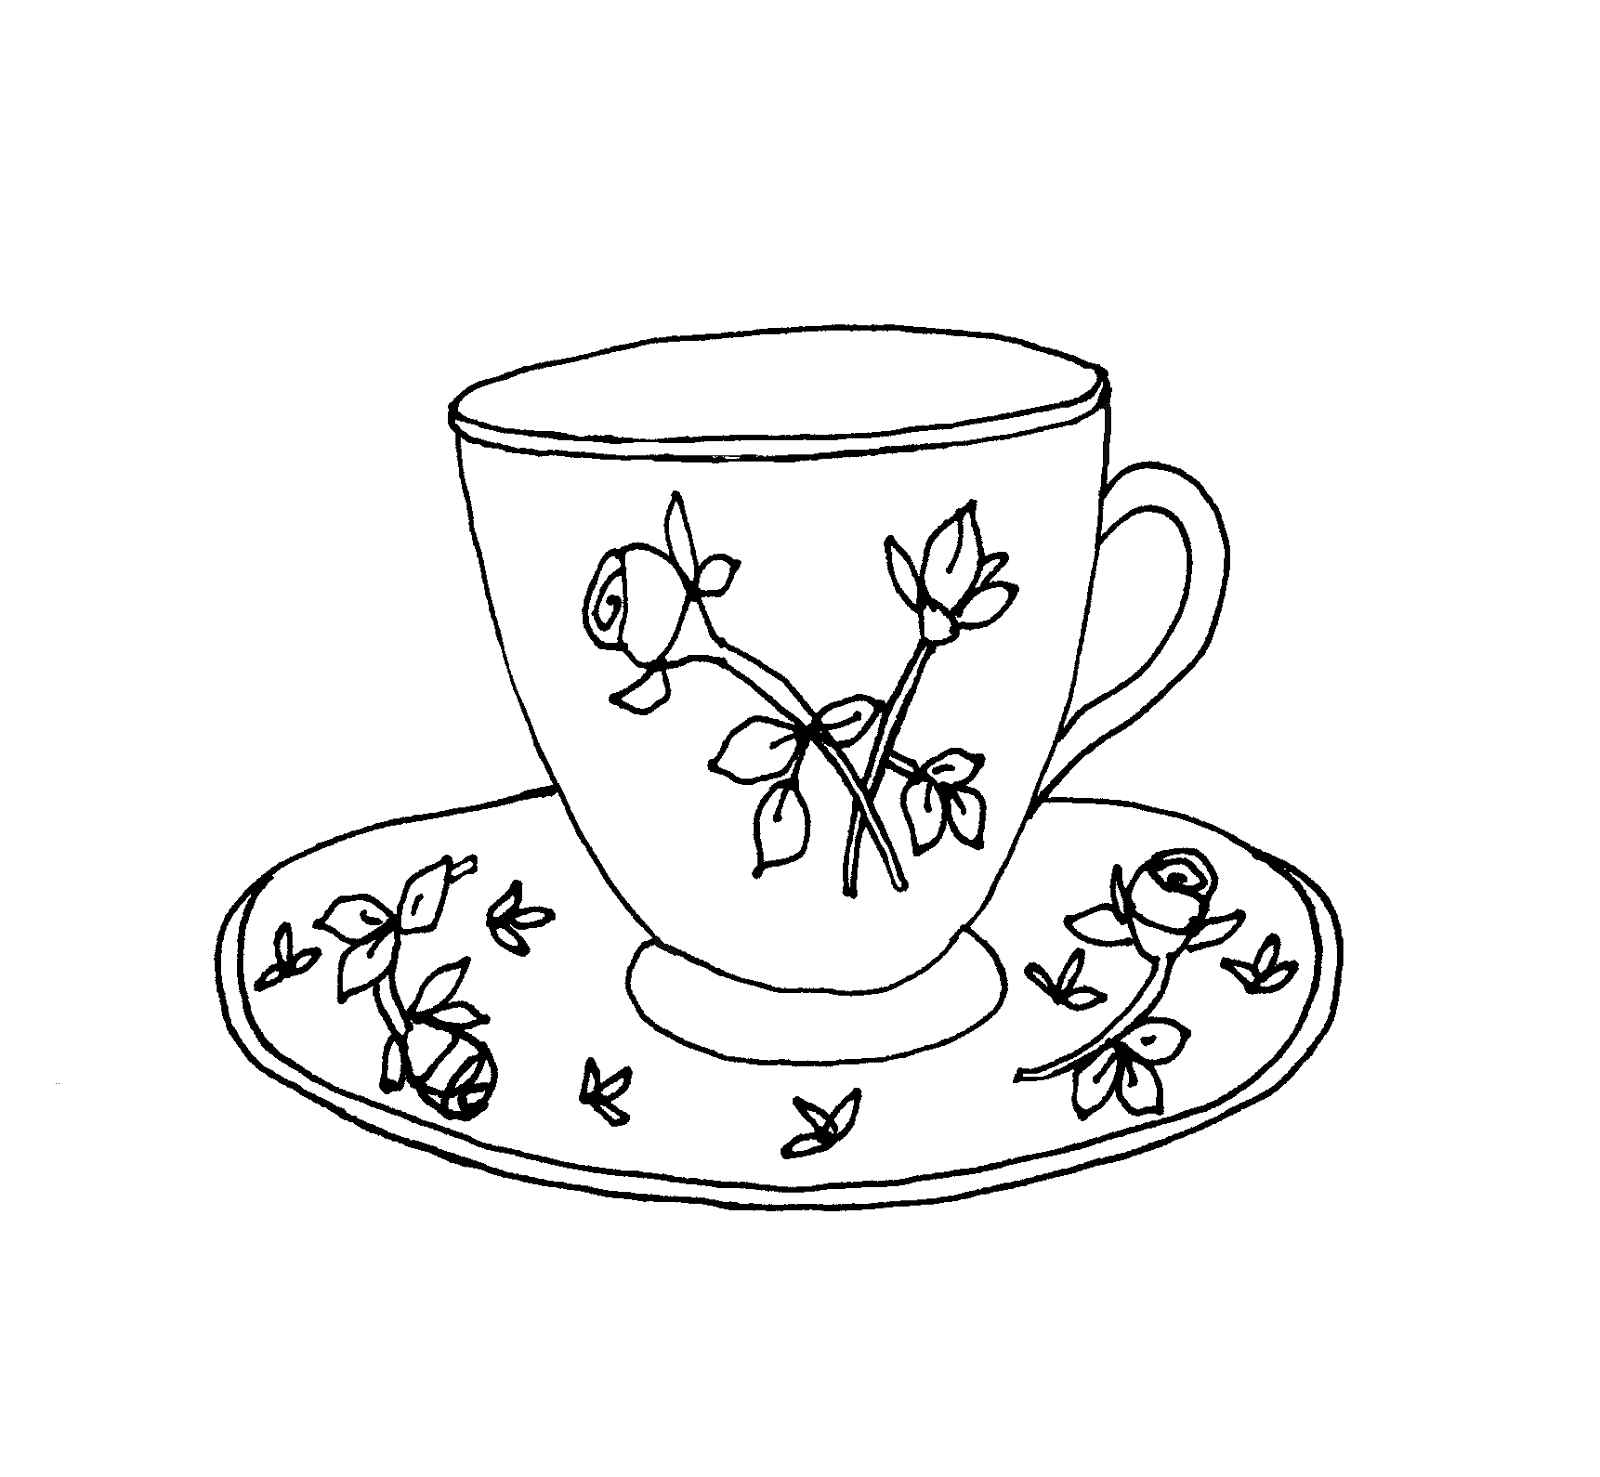 1600x1477 55 Tea Cup Sketch, How To Draw A Tea Cup (Beginning